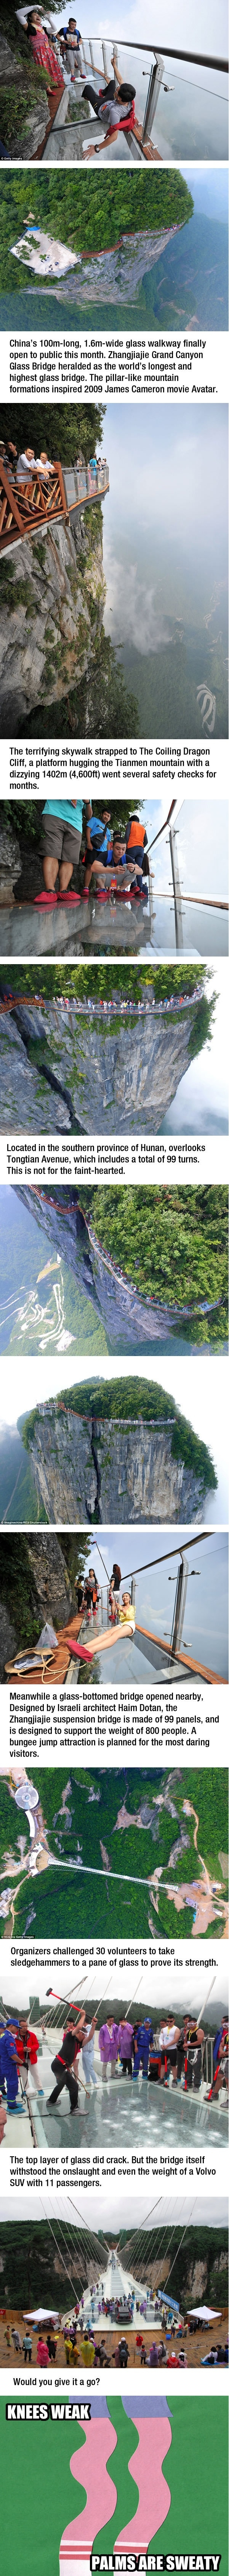 Terrifying 4,600ft glass skywalk in China